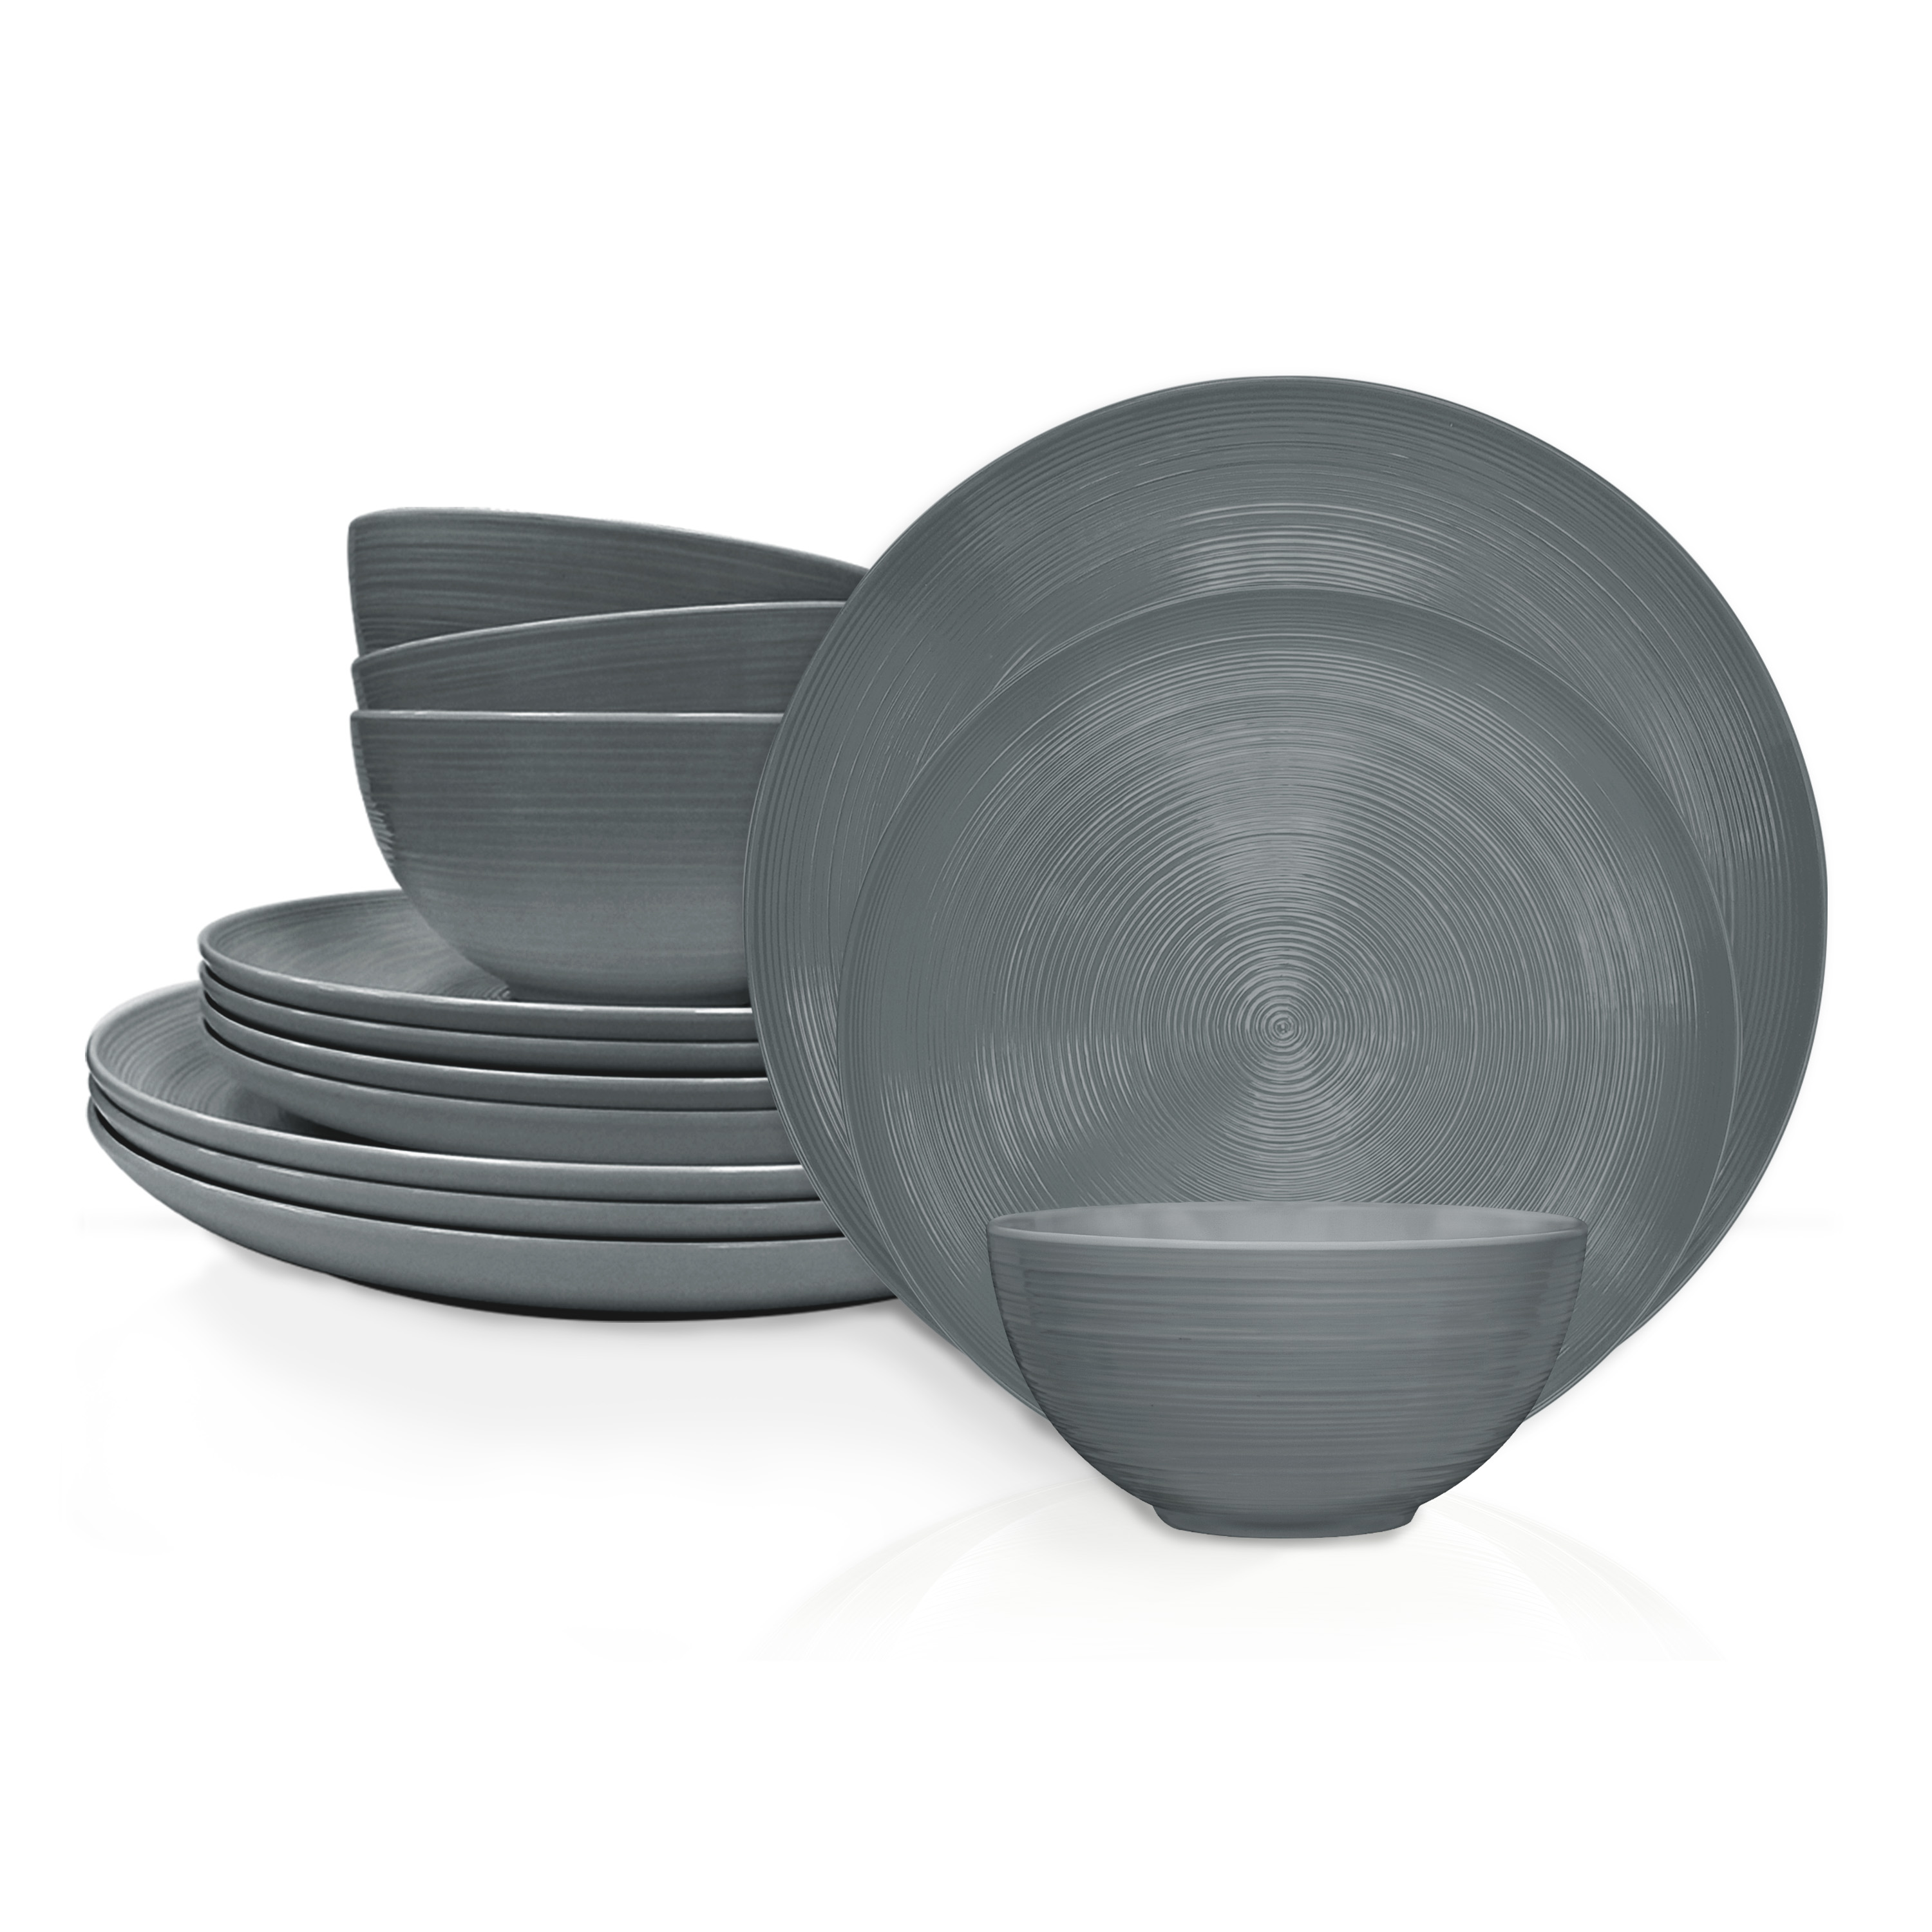 American Conventional Plate & Bowl Sets, Charcoal, 12-piece set slideshow image 1